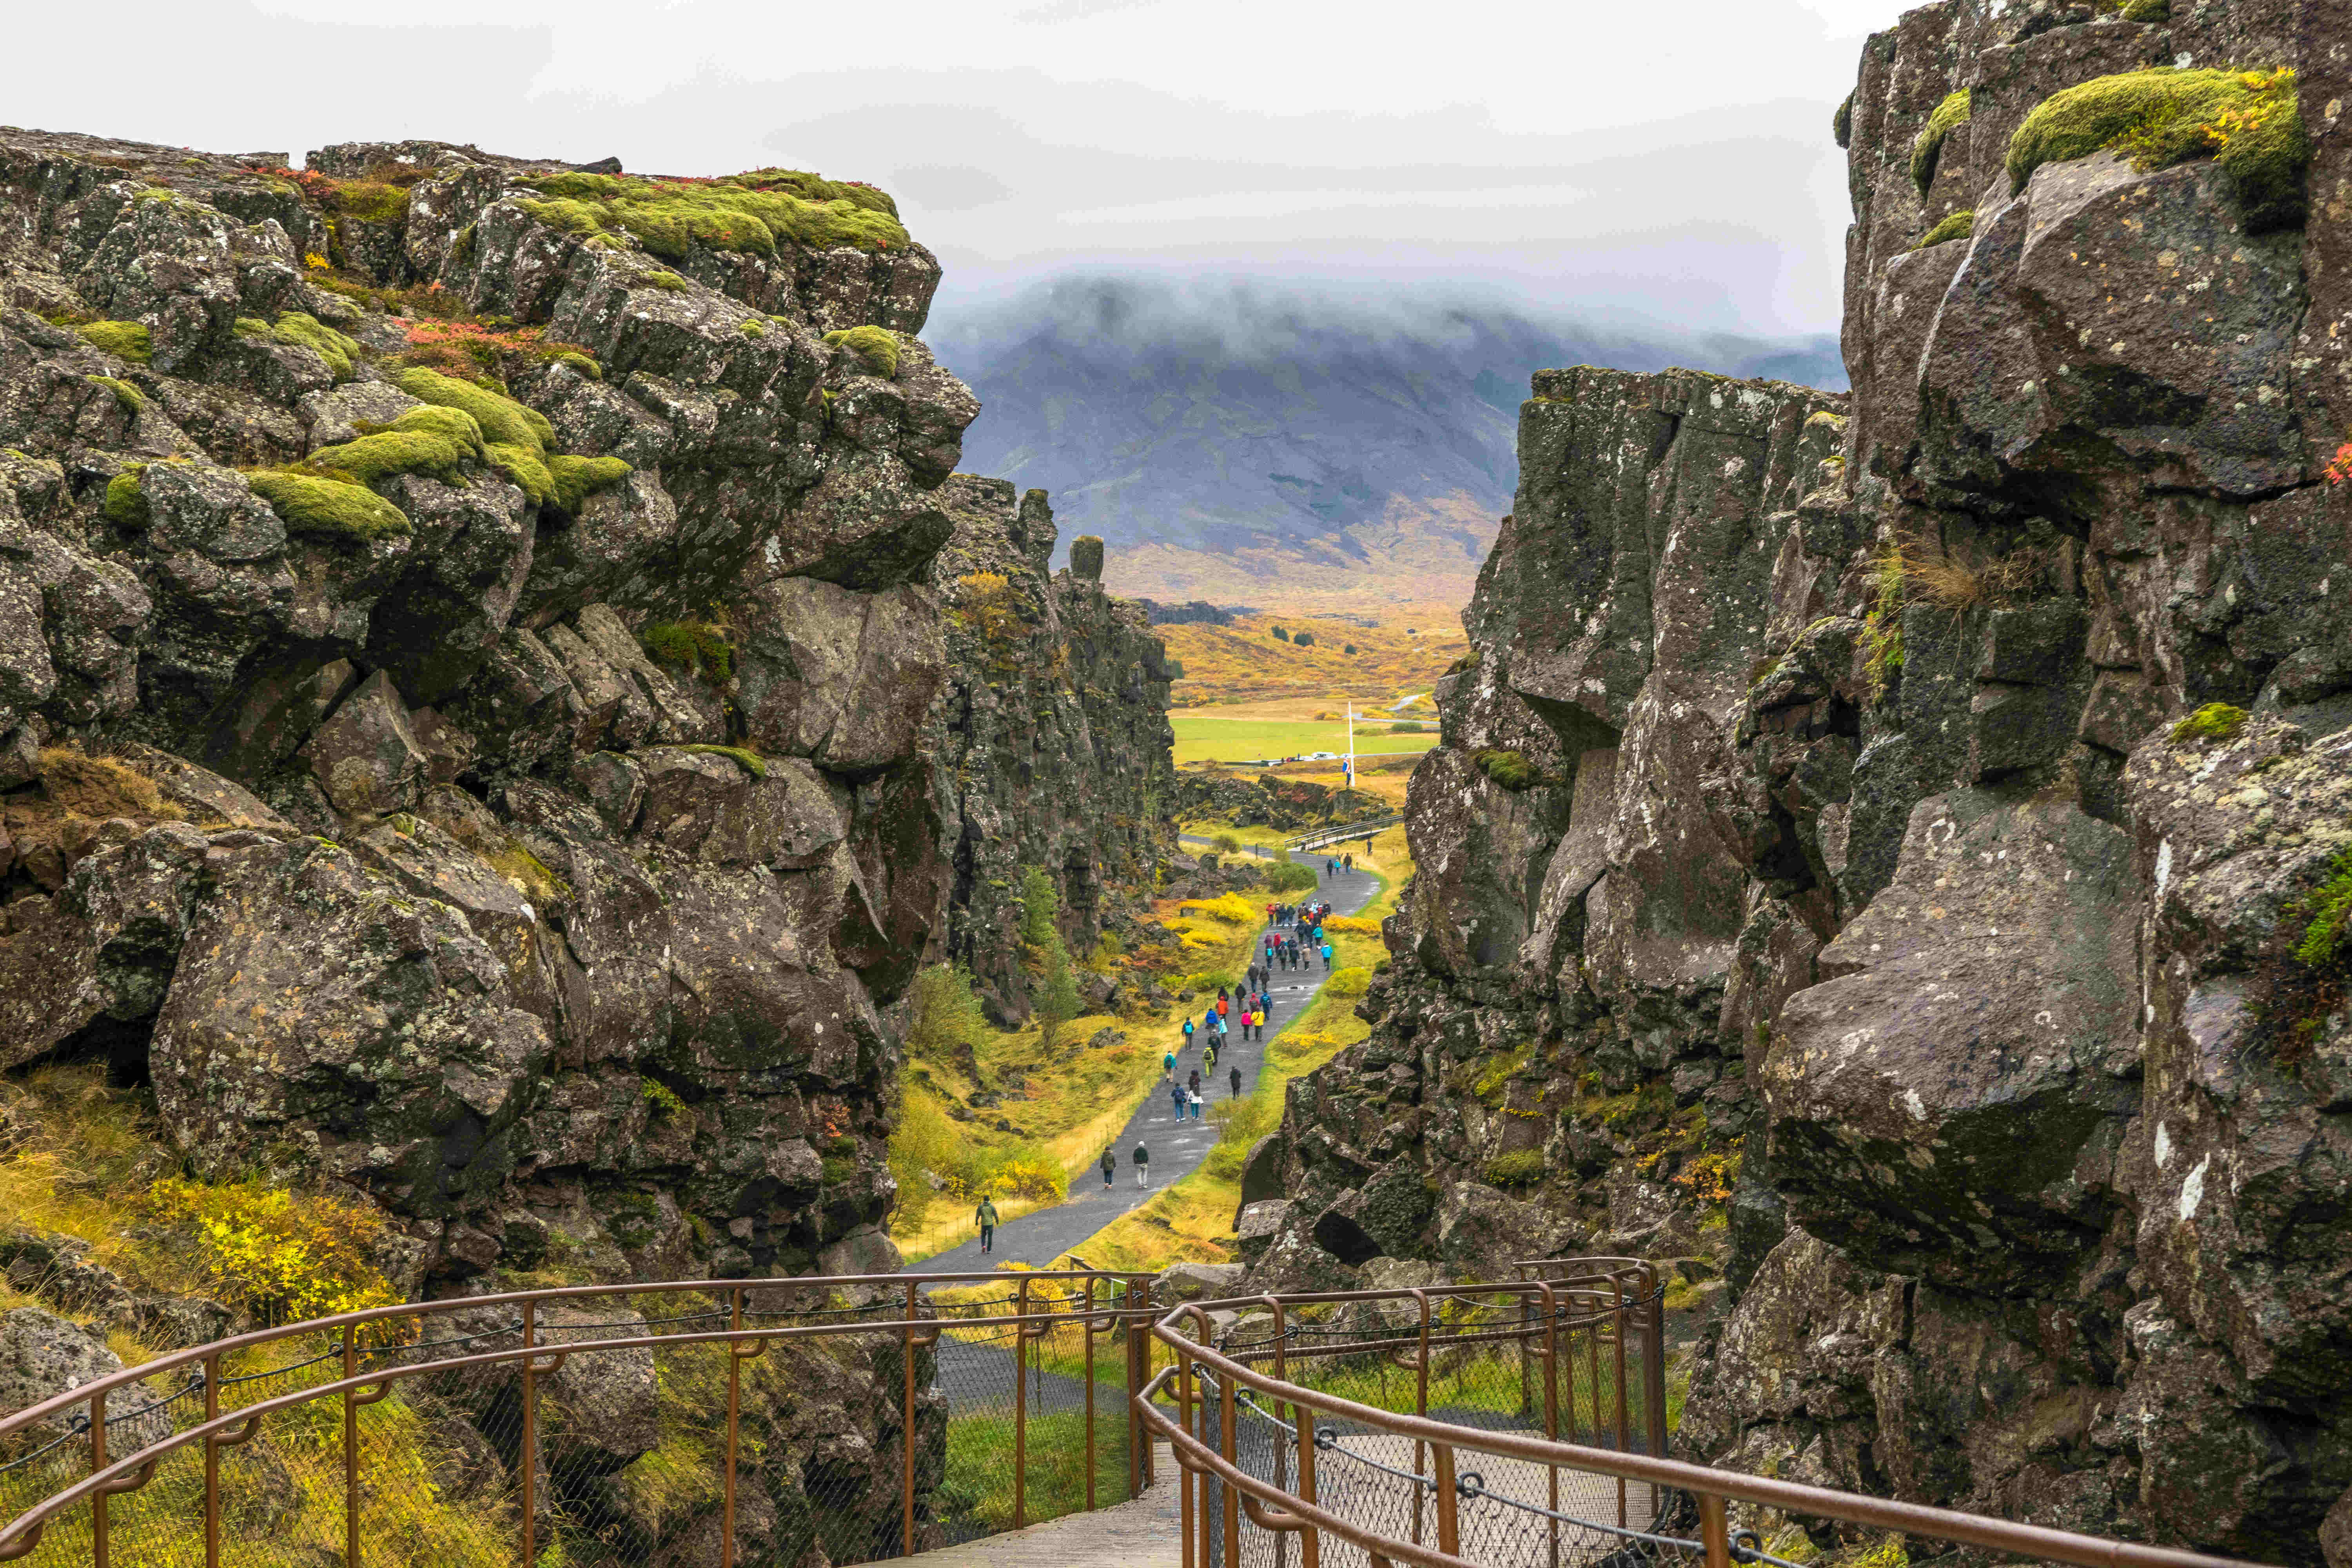 Beautiful view of people walking in the seam between the Eurasian and North American tectonic plates.